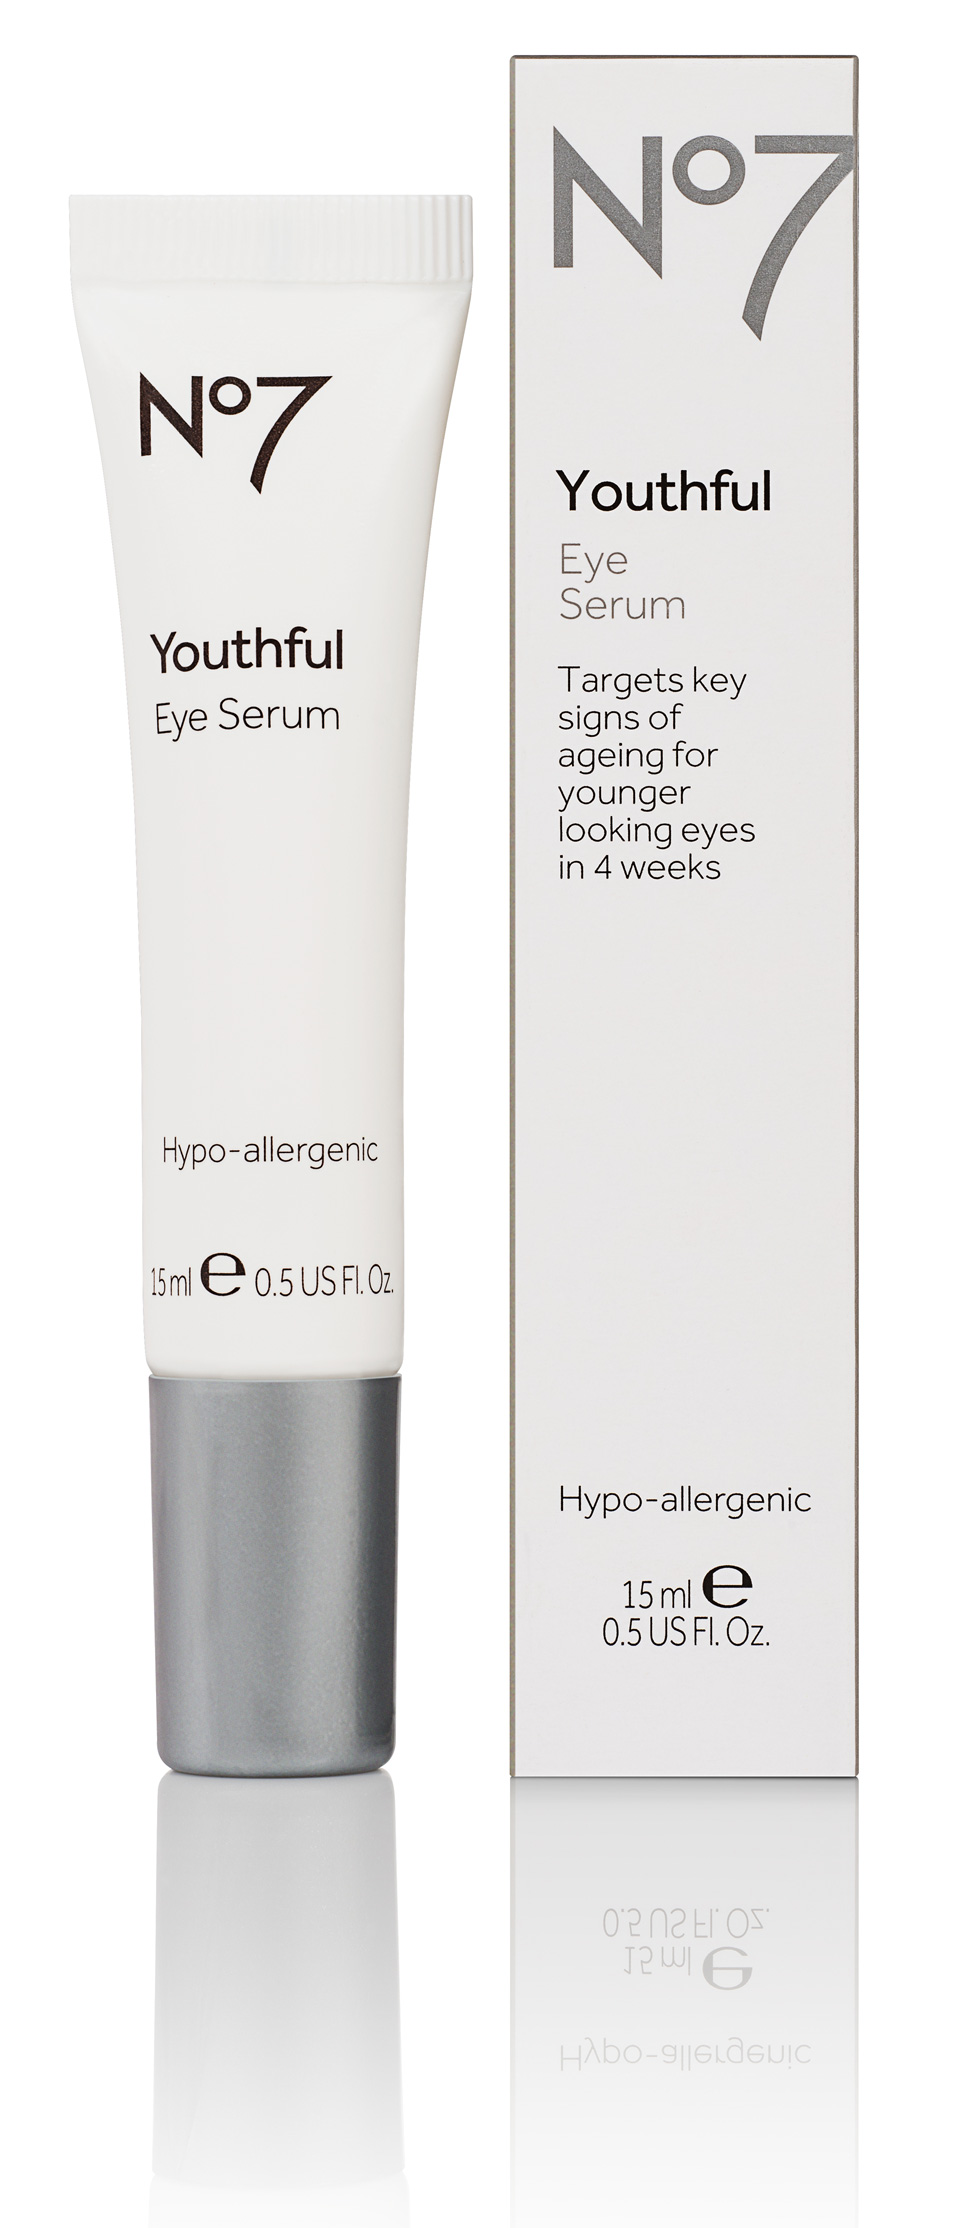 Boots No7 Youthful Eye Serum